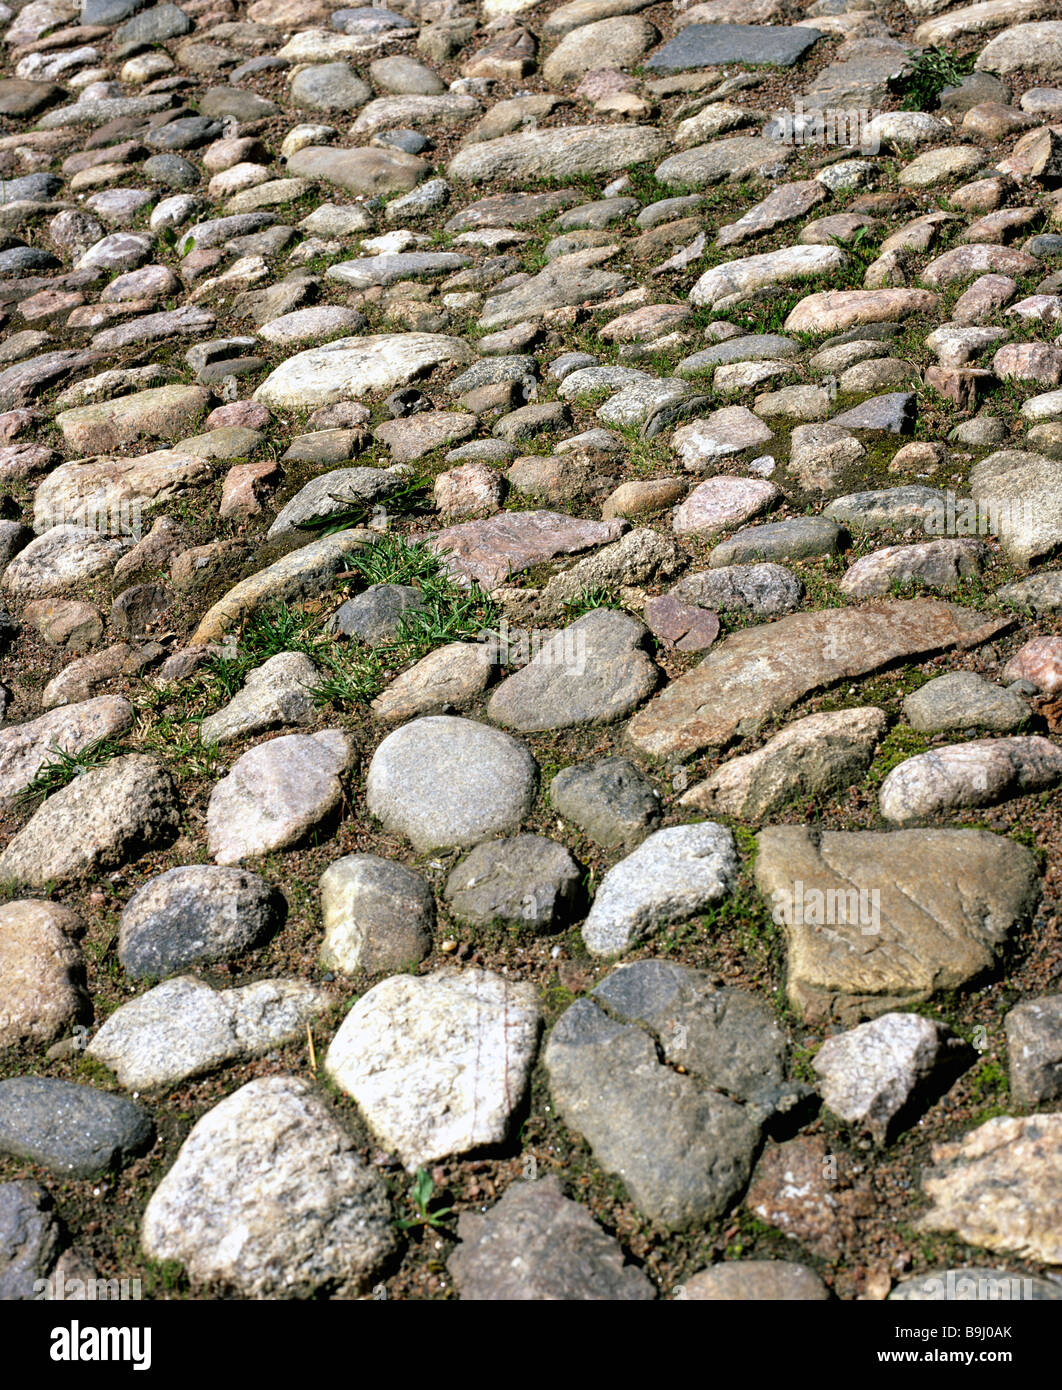 Natural cobble-stoned pavement - Stock Image